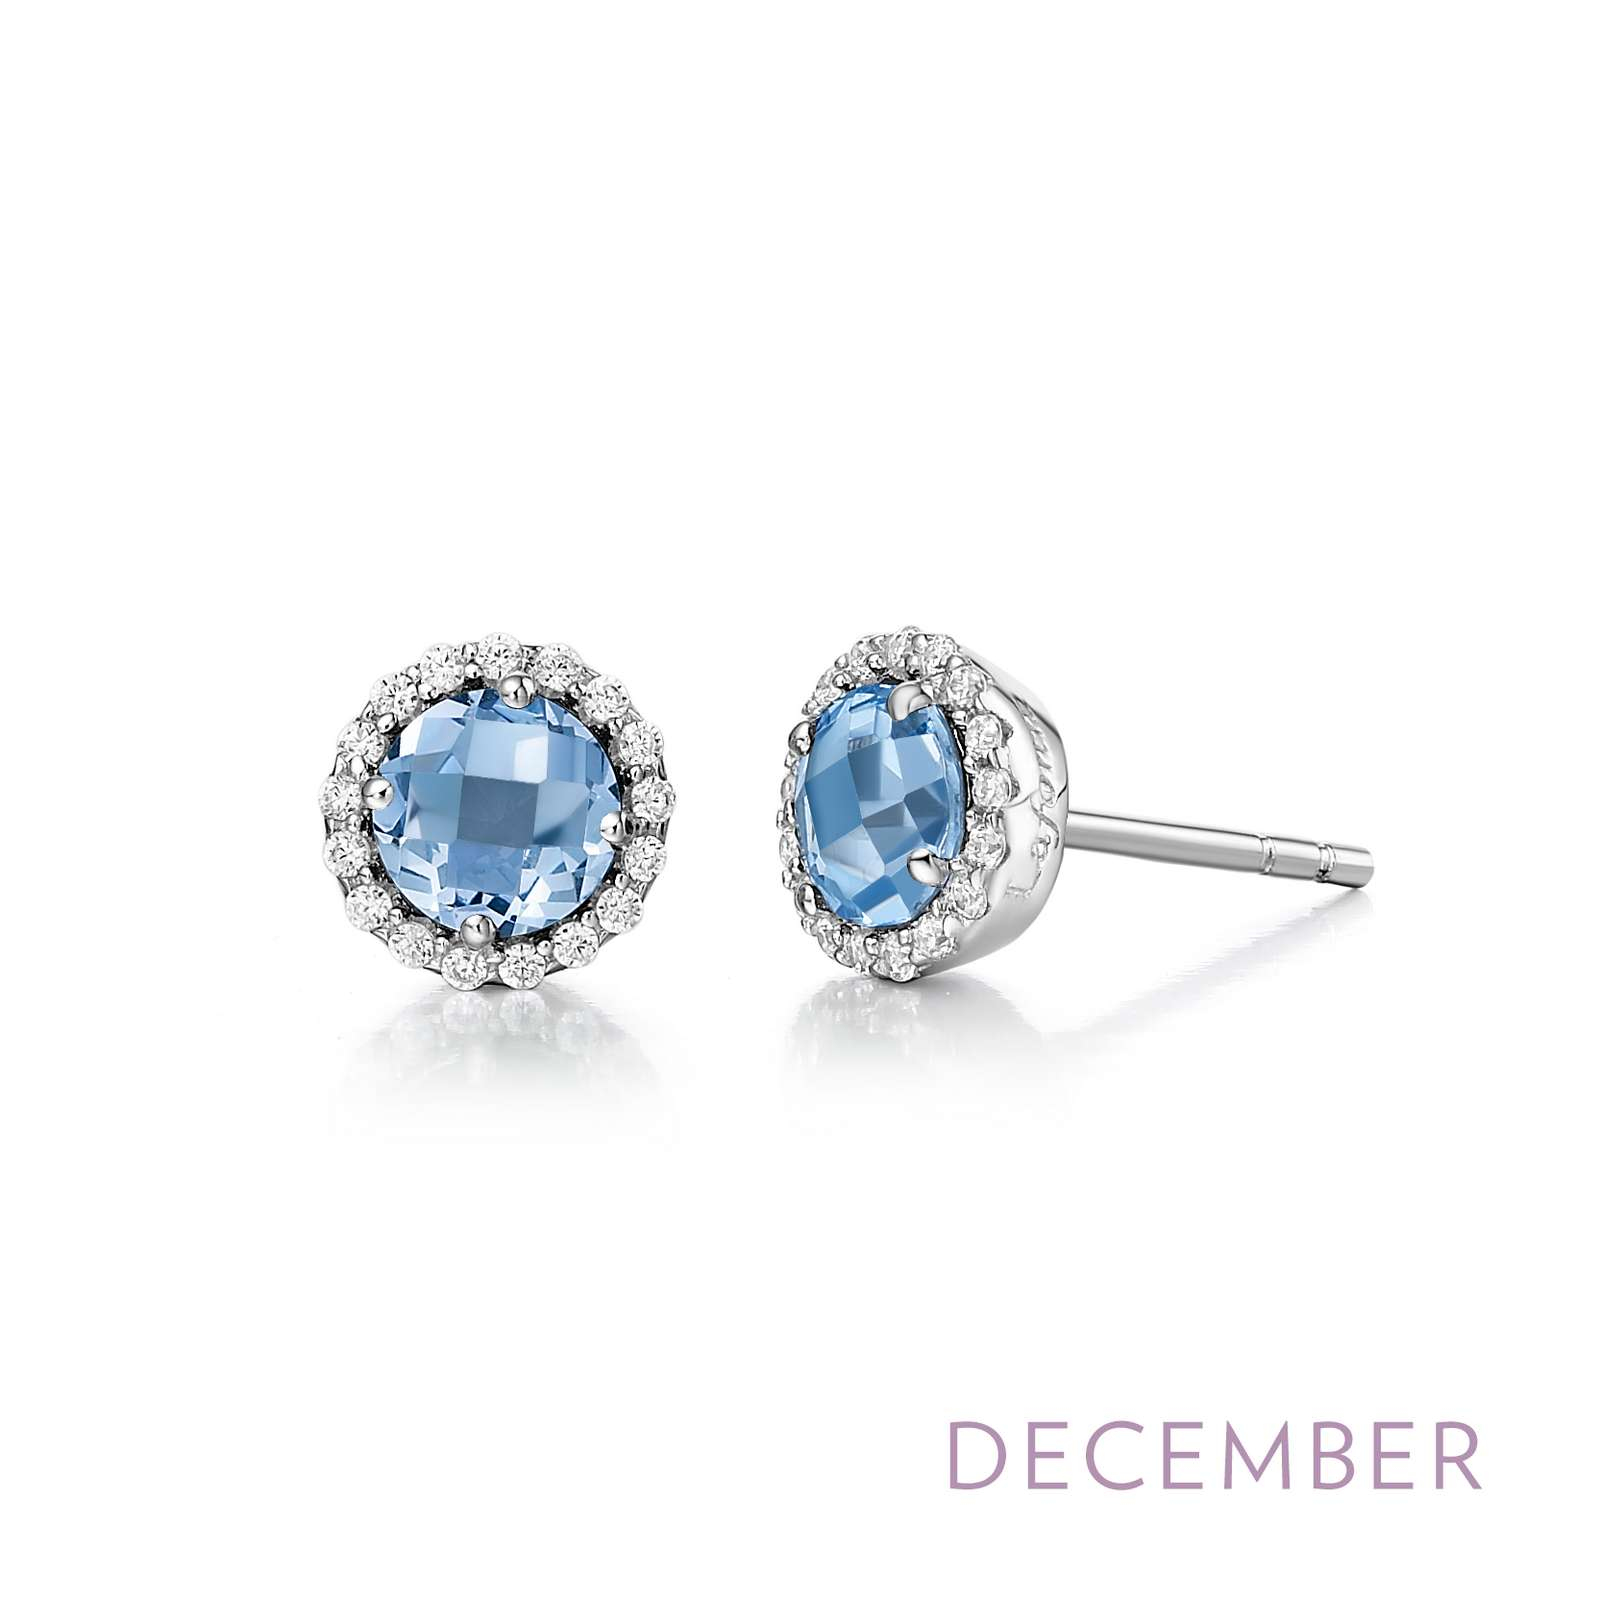 December - Blue Topaz.  Adorn yourself with Lafonn's birthstone jewelry. These halo stud earrings are set with genuine blue topazes surrounded by Lafonn's signature Lassaire simulated diamonds in sterling silver bonded with platinum.